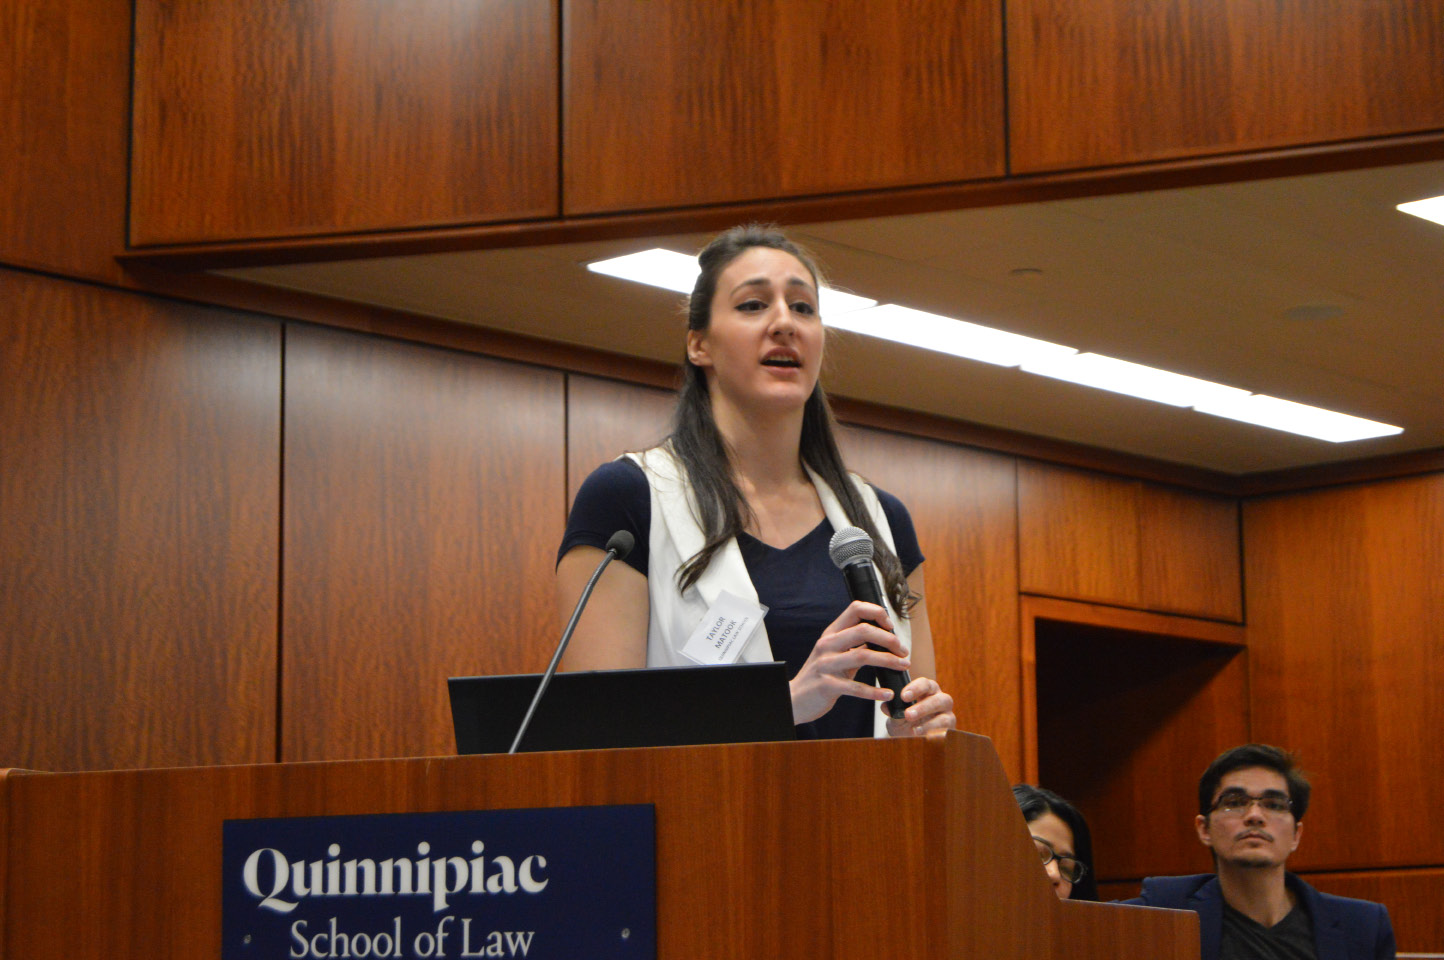 Quinnipiac University student Taylor Matook discusses signs of human trafficking during an event Monday meant to inform hospitality workers. | Mike Savino, Record-Journal